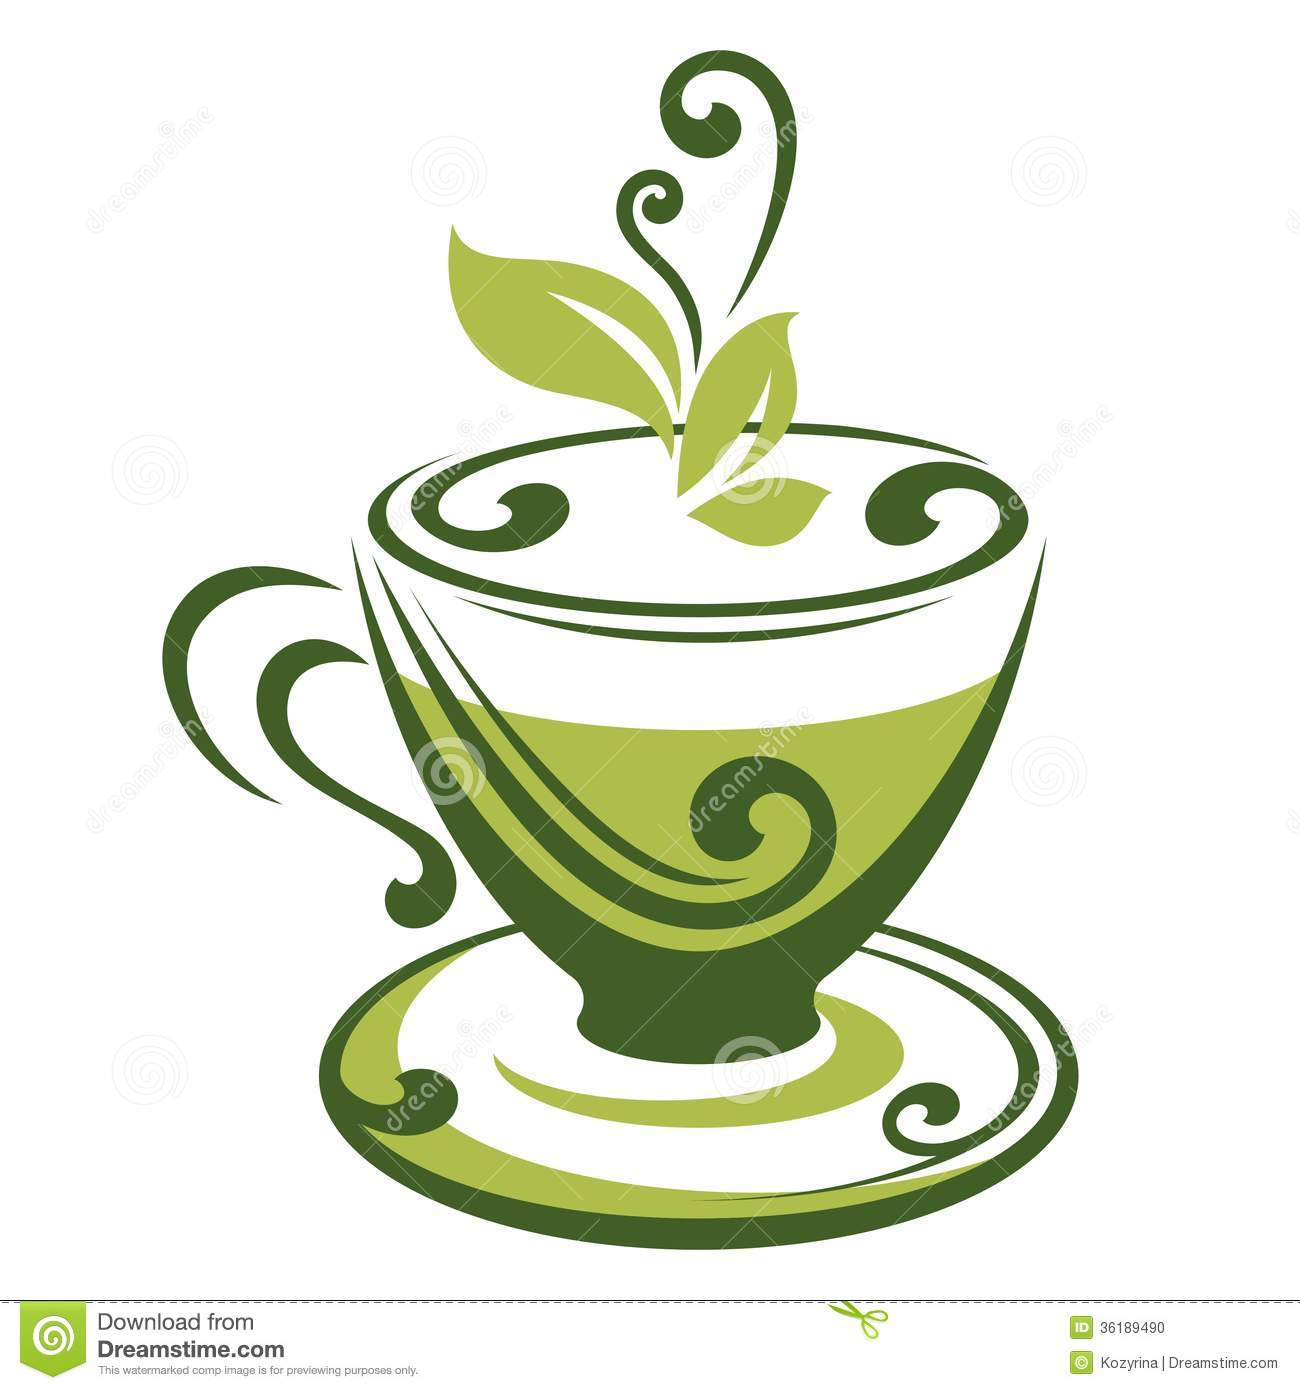 Vector icon of green tea cup. This is file of EPS10 format.